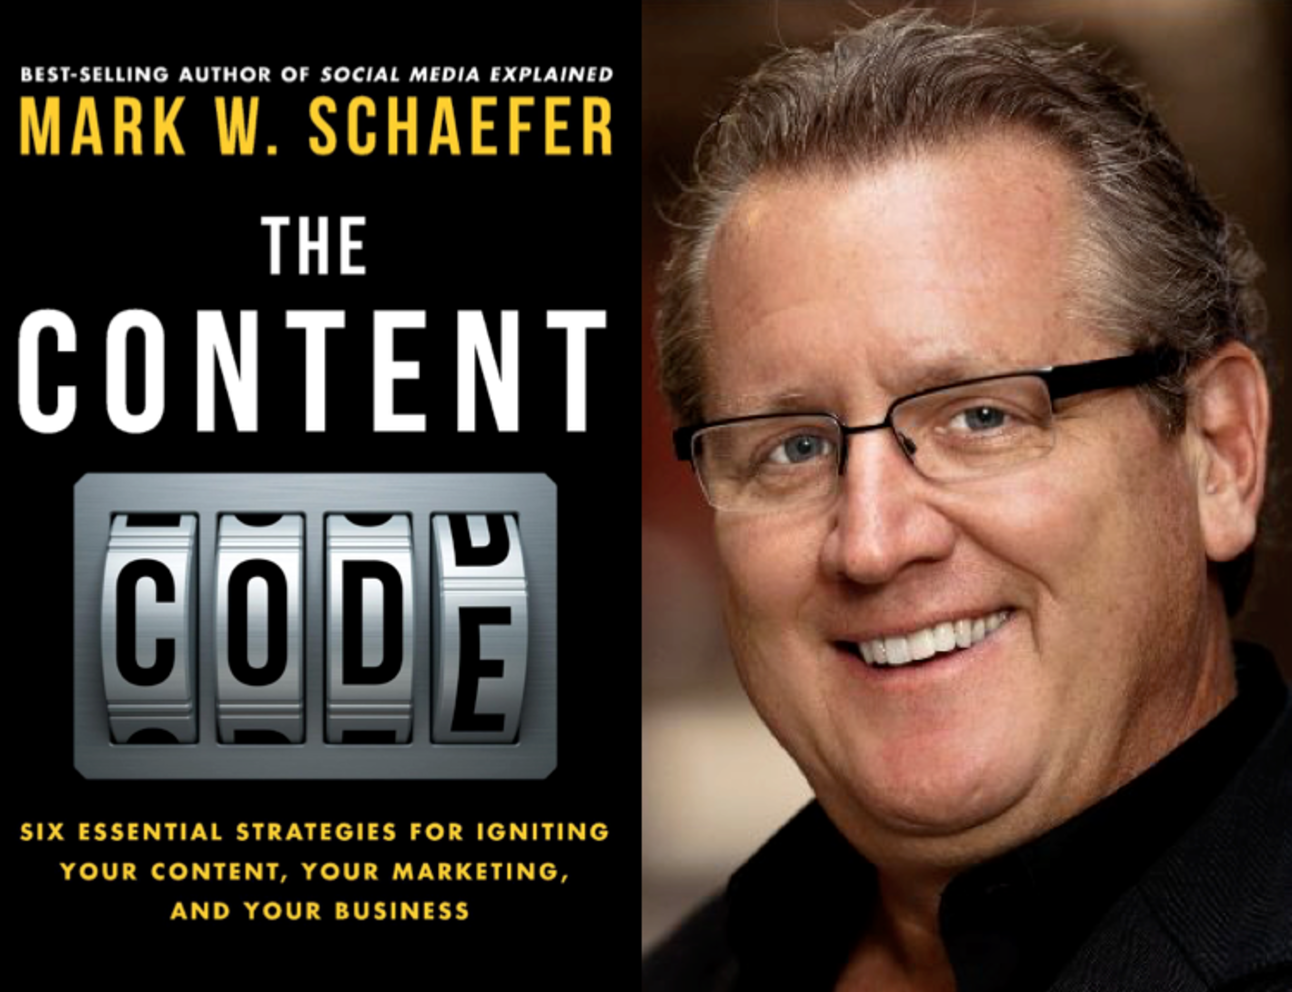 42 Content & Social Media Influencers - Mark Schaefer